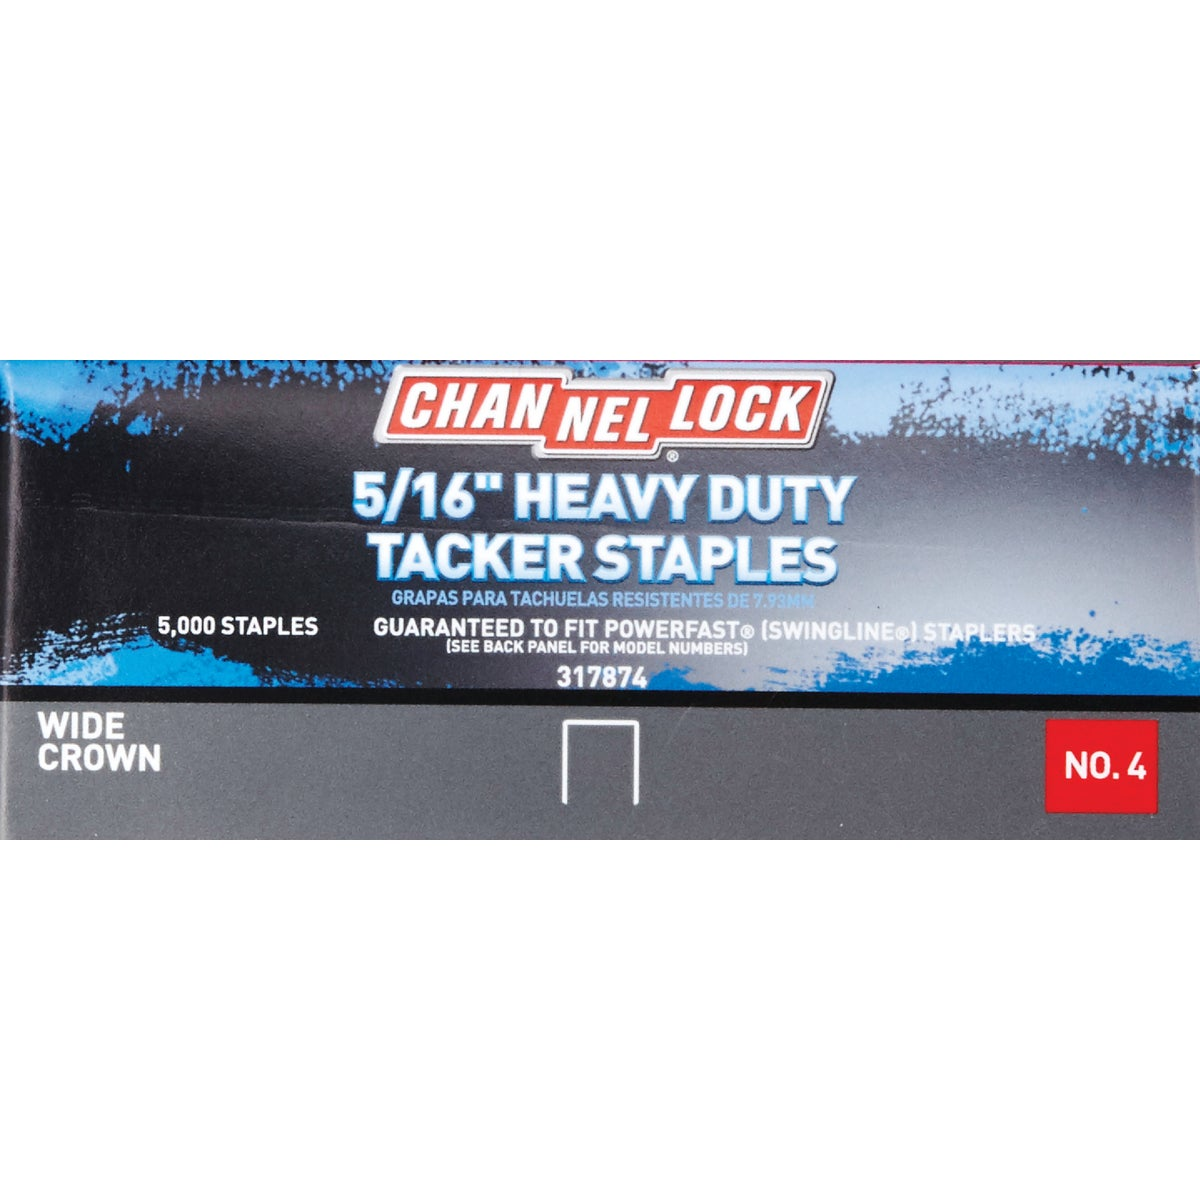 "5/16"" TACKER STAPLES - A115162 by Channellock®"